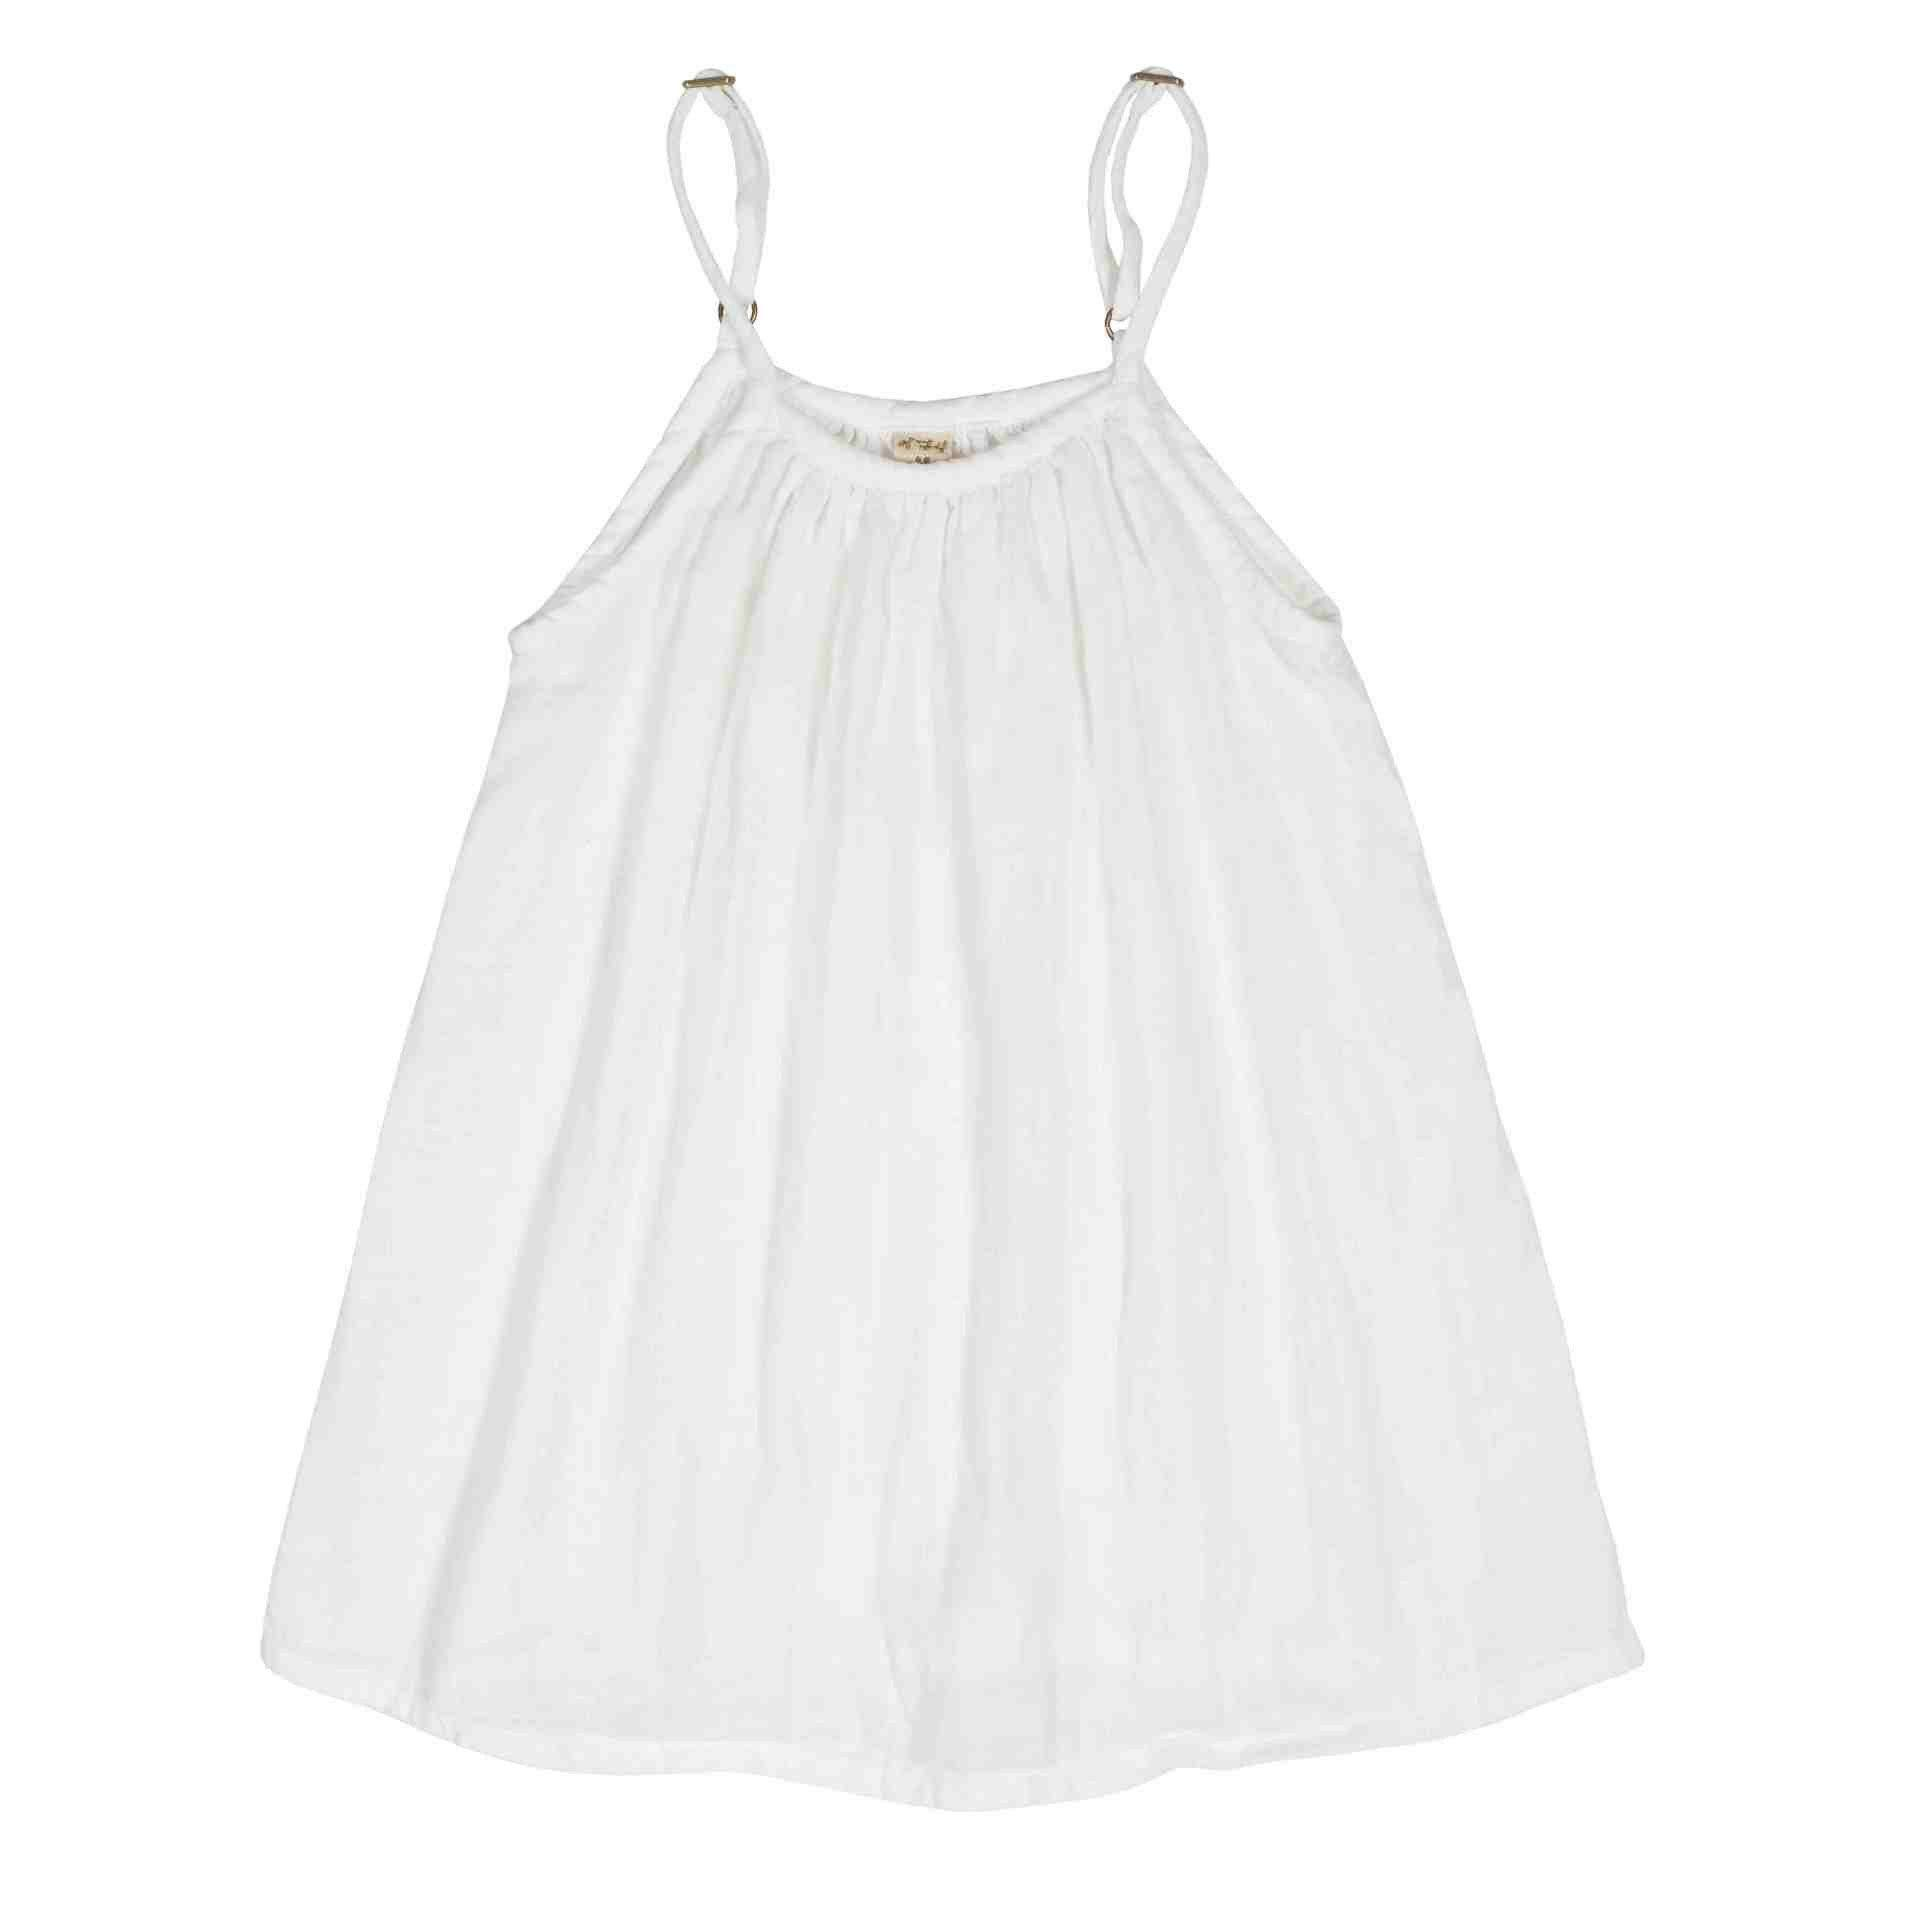 Numero 74 Mia Dress White - Tiny People Cool Kids Clothes Byron Bay